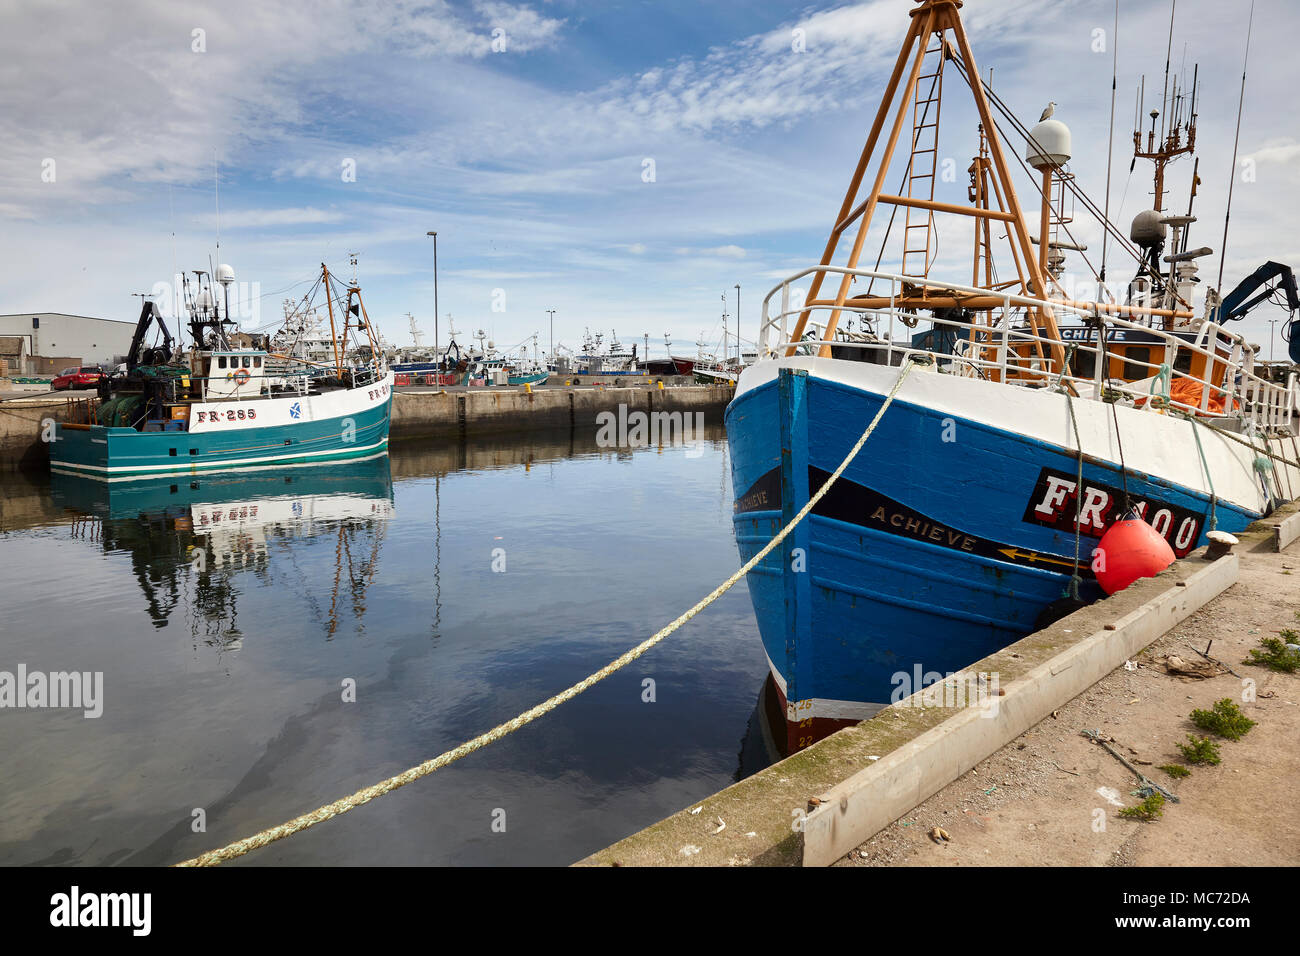 Moored at Fraserburgh Harbour, The ACHIEVE, FR 100, a near shore fishing vessel with EL-SHADDAI FR 285 moored in the background. - Stock Image